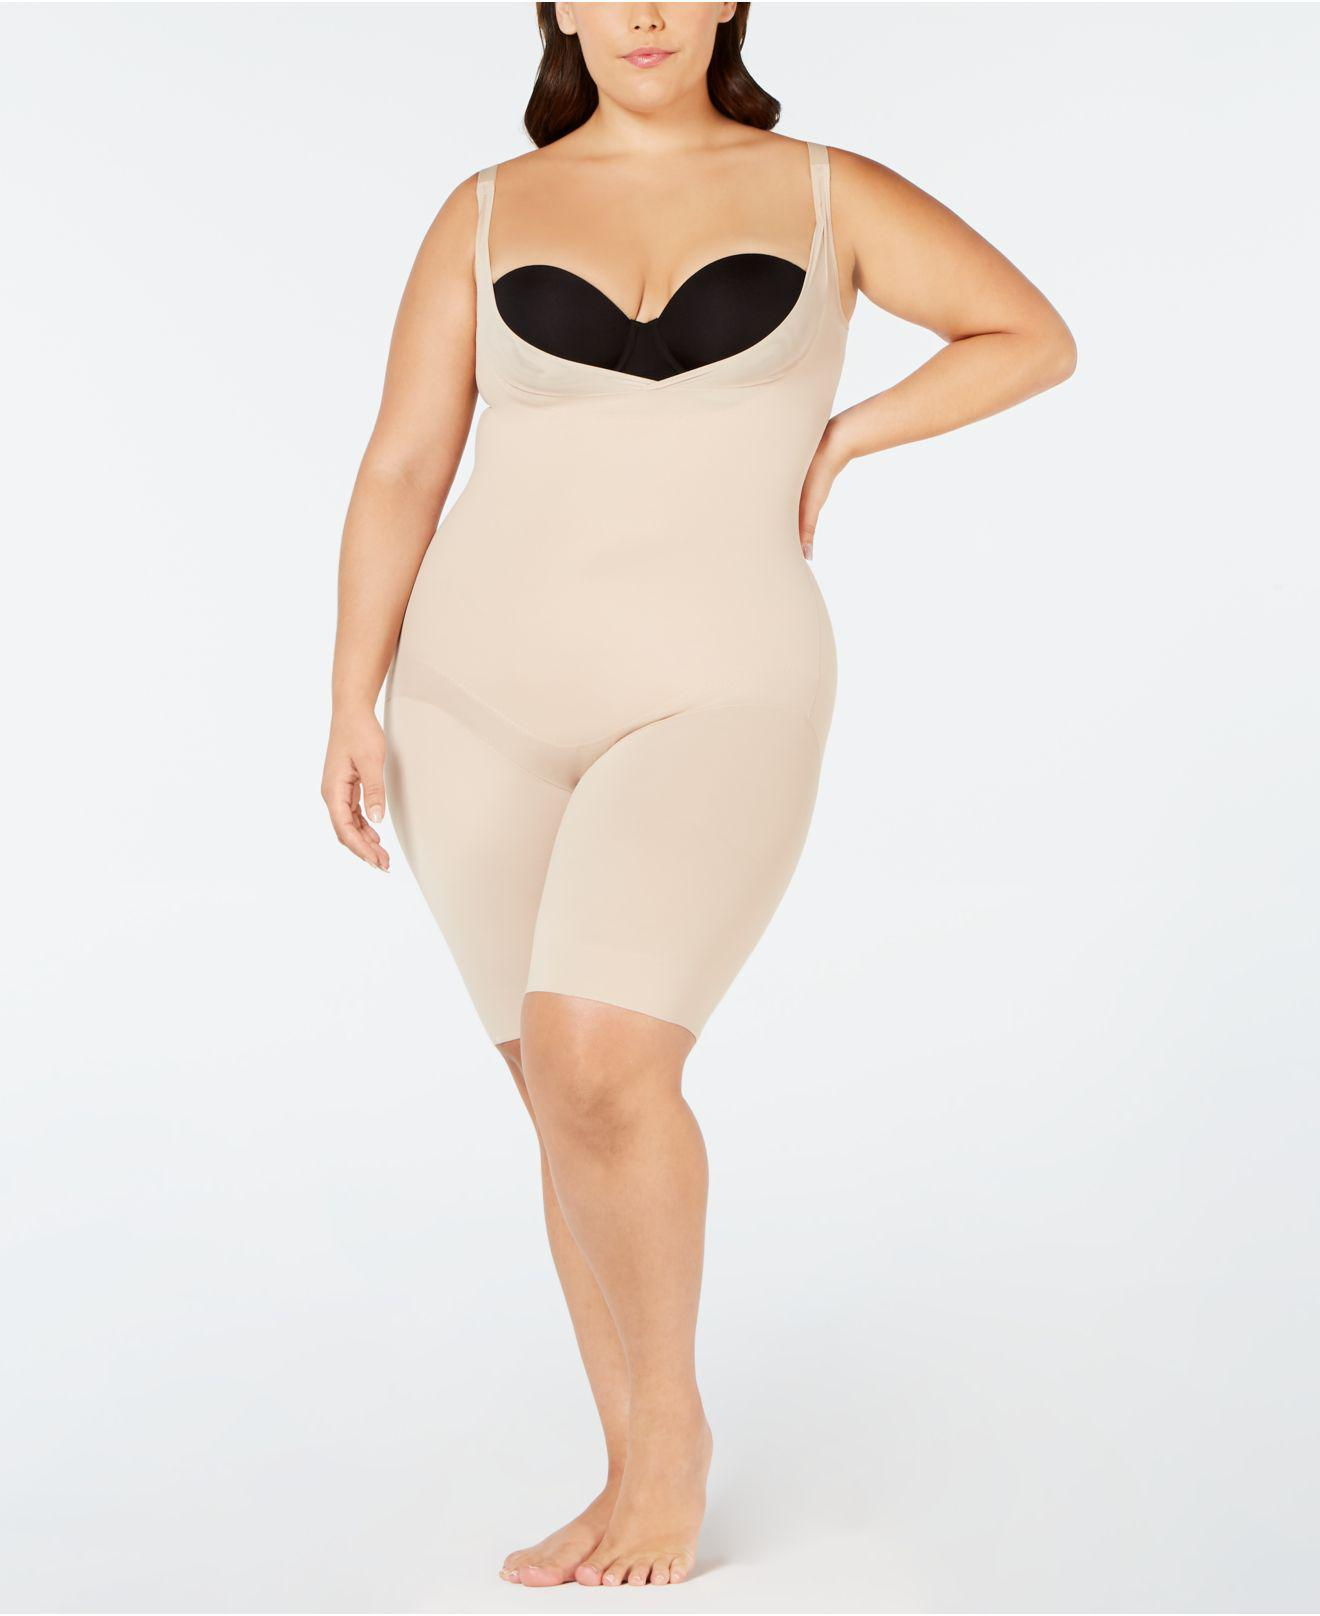 415c883c6 Miraclesuit Plus Size Flexible Fit Extra-firm Singlette 2931 in ...